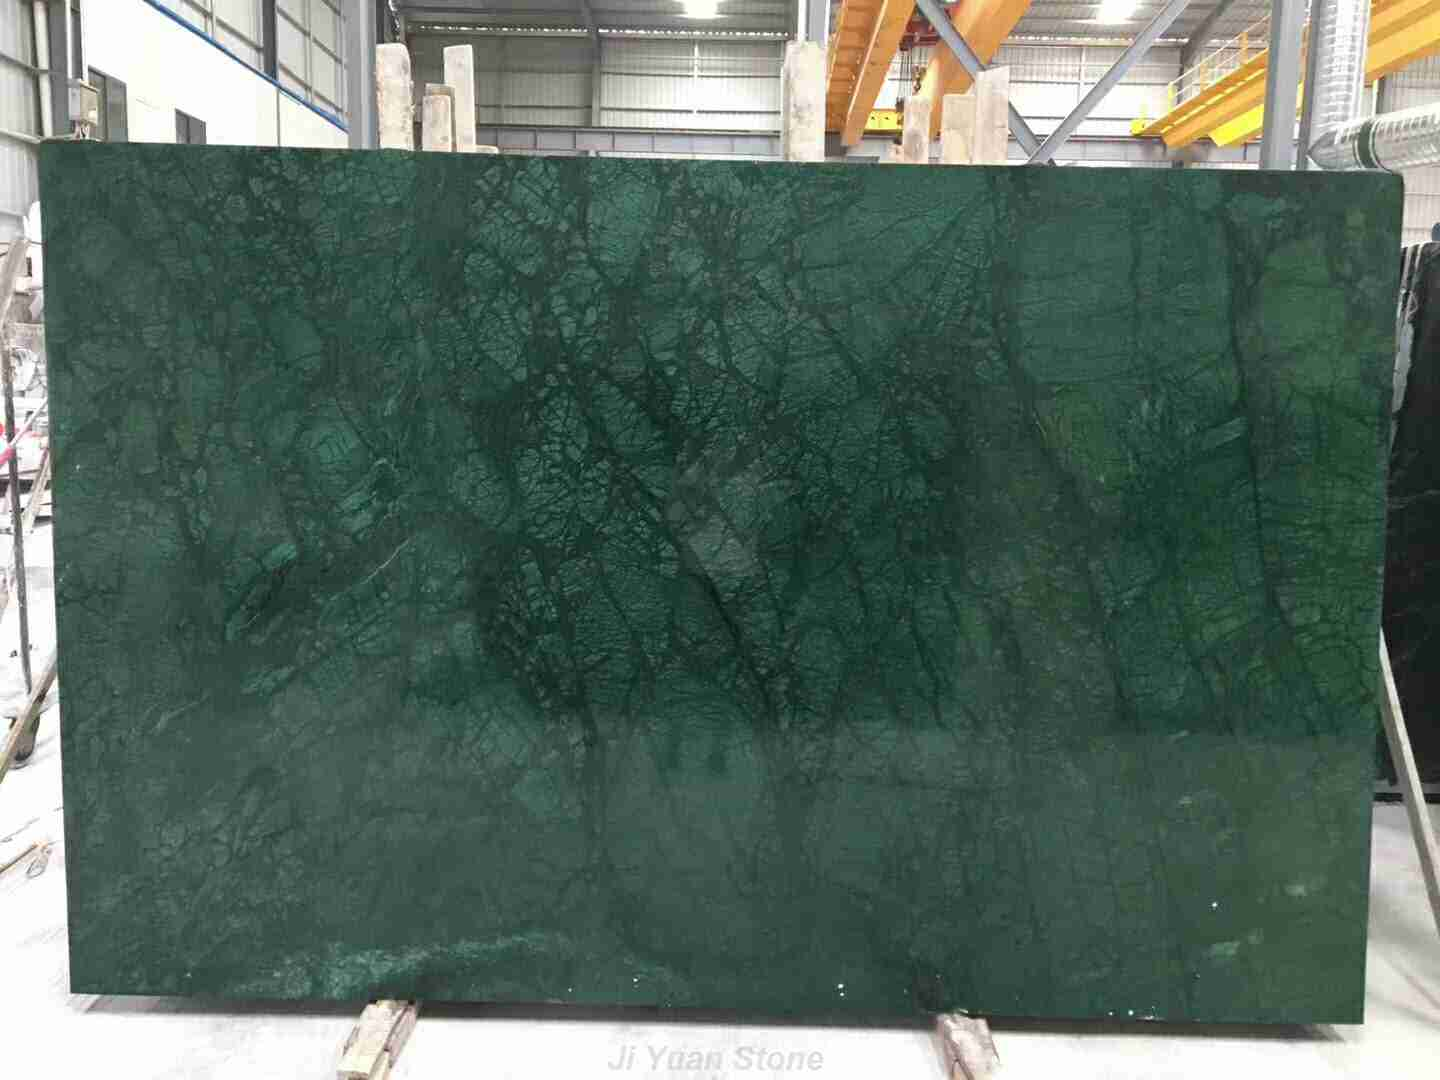 white green marble,green marble granite,ming green marble tile,black green marble,green carrara marble,green marble suppliers,green marble subway tile,empress green marble